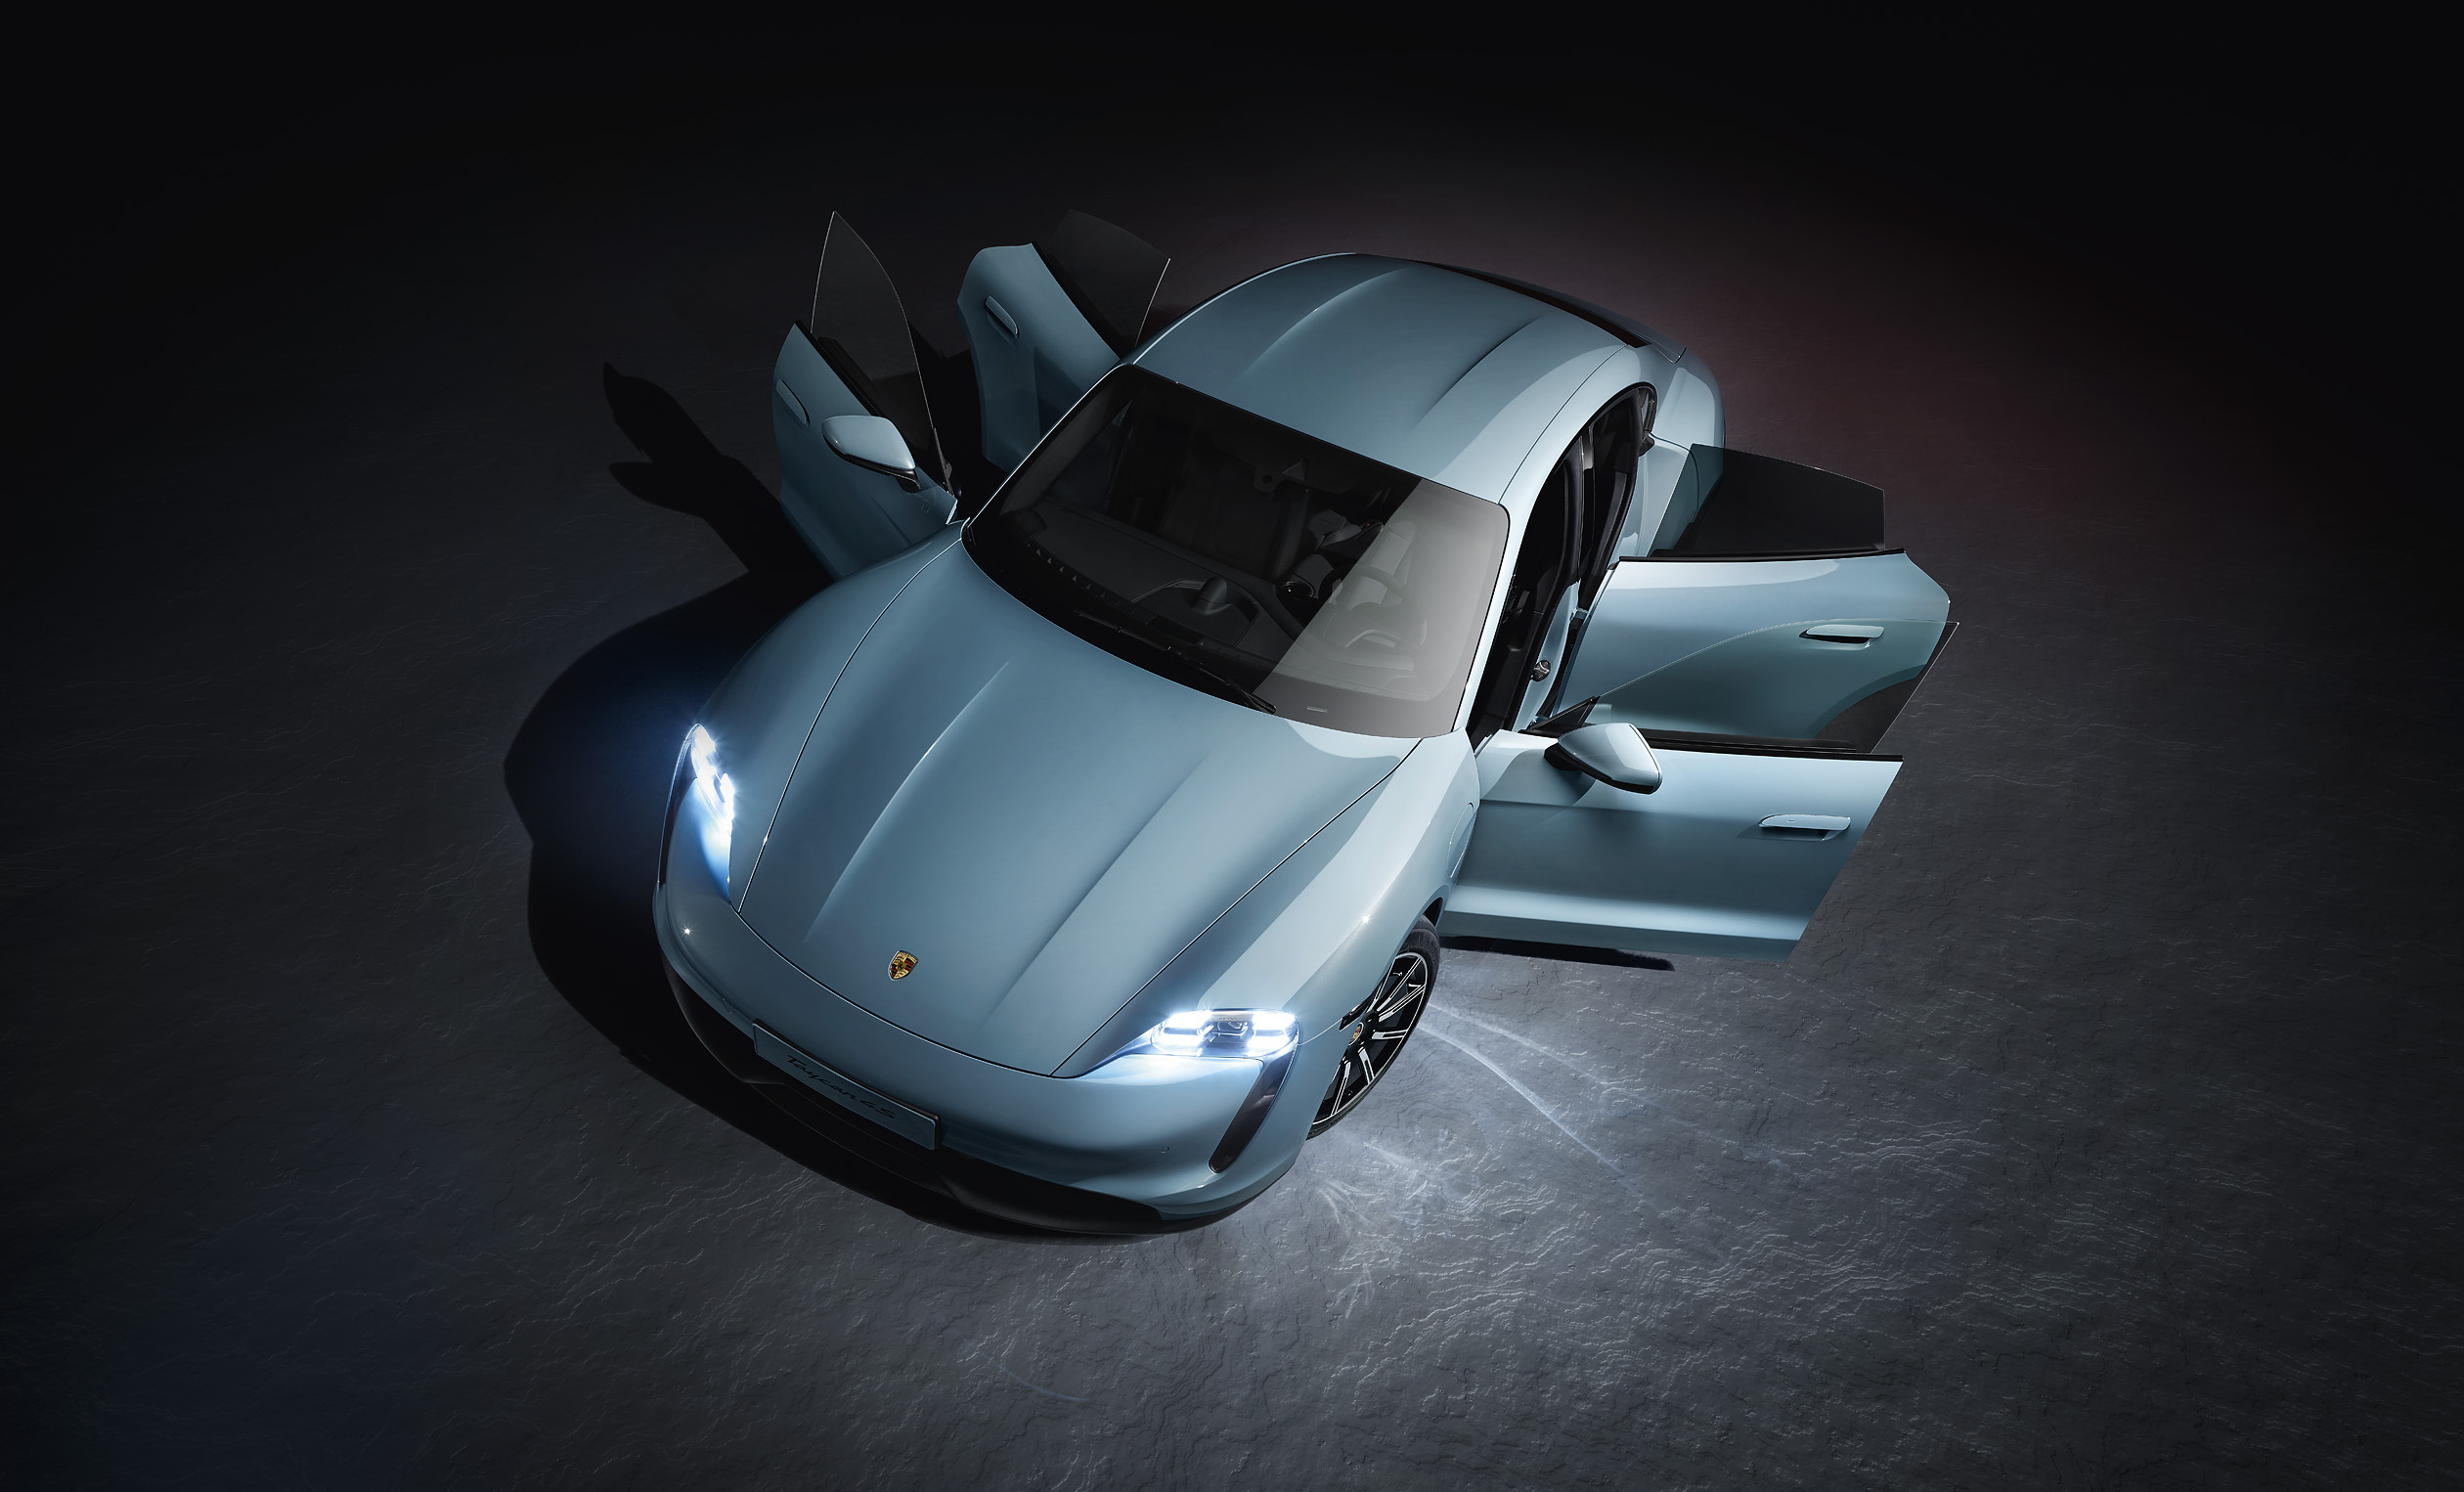 Porsche adds the Taycan 4S to the electric family [4]